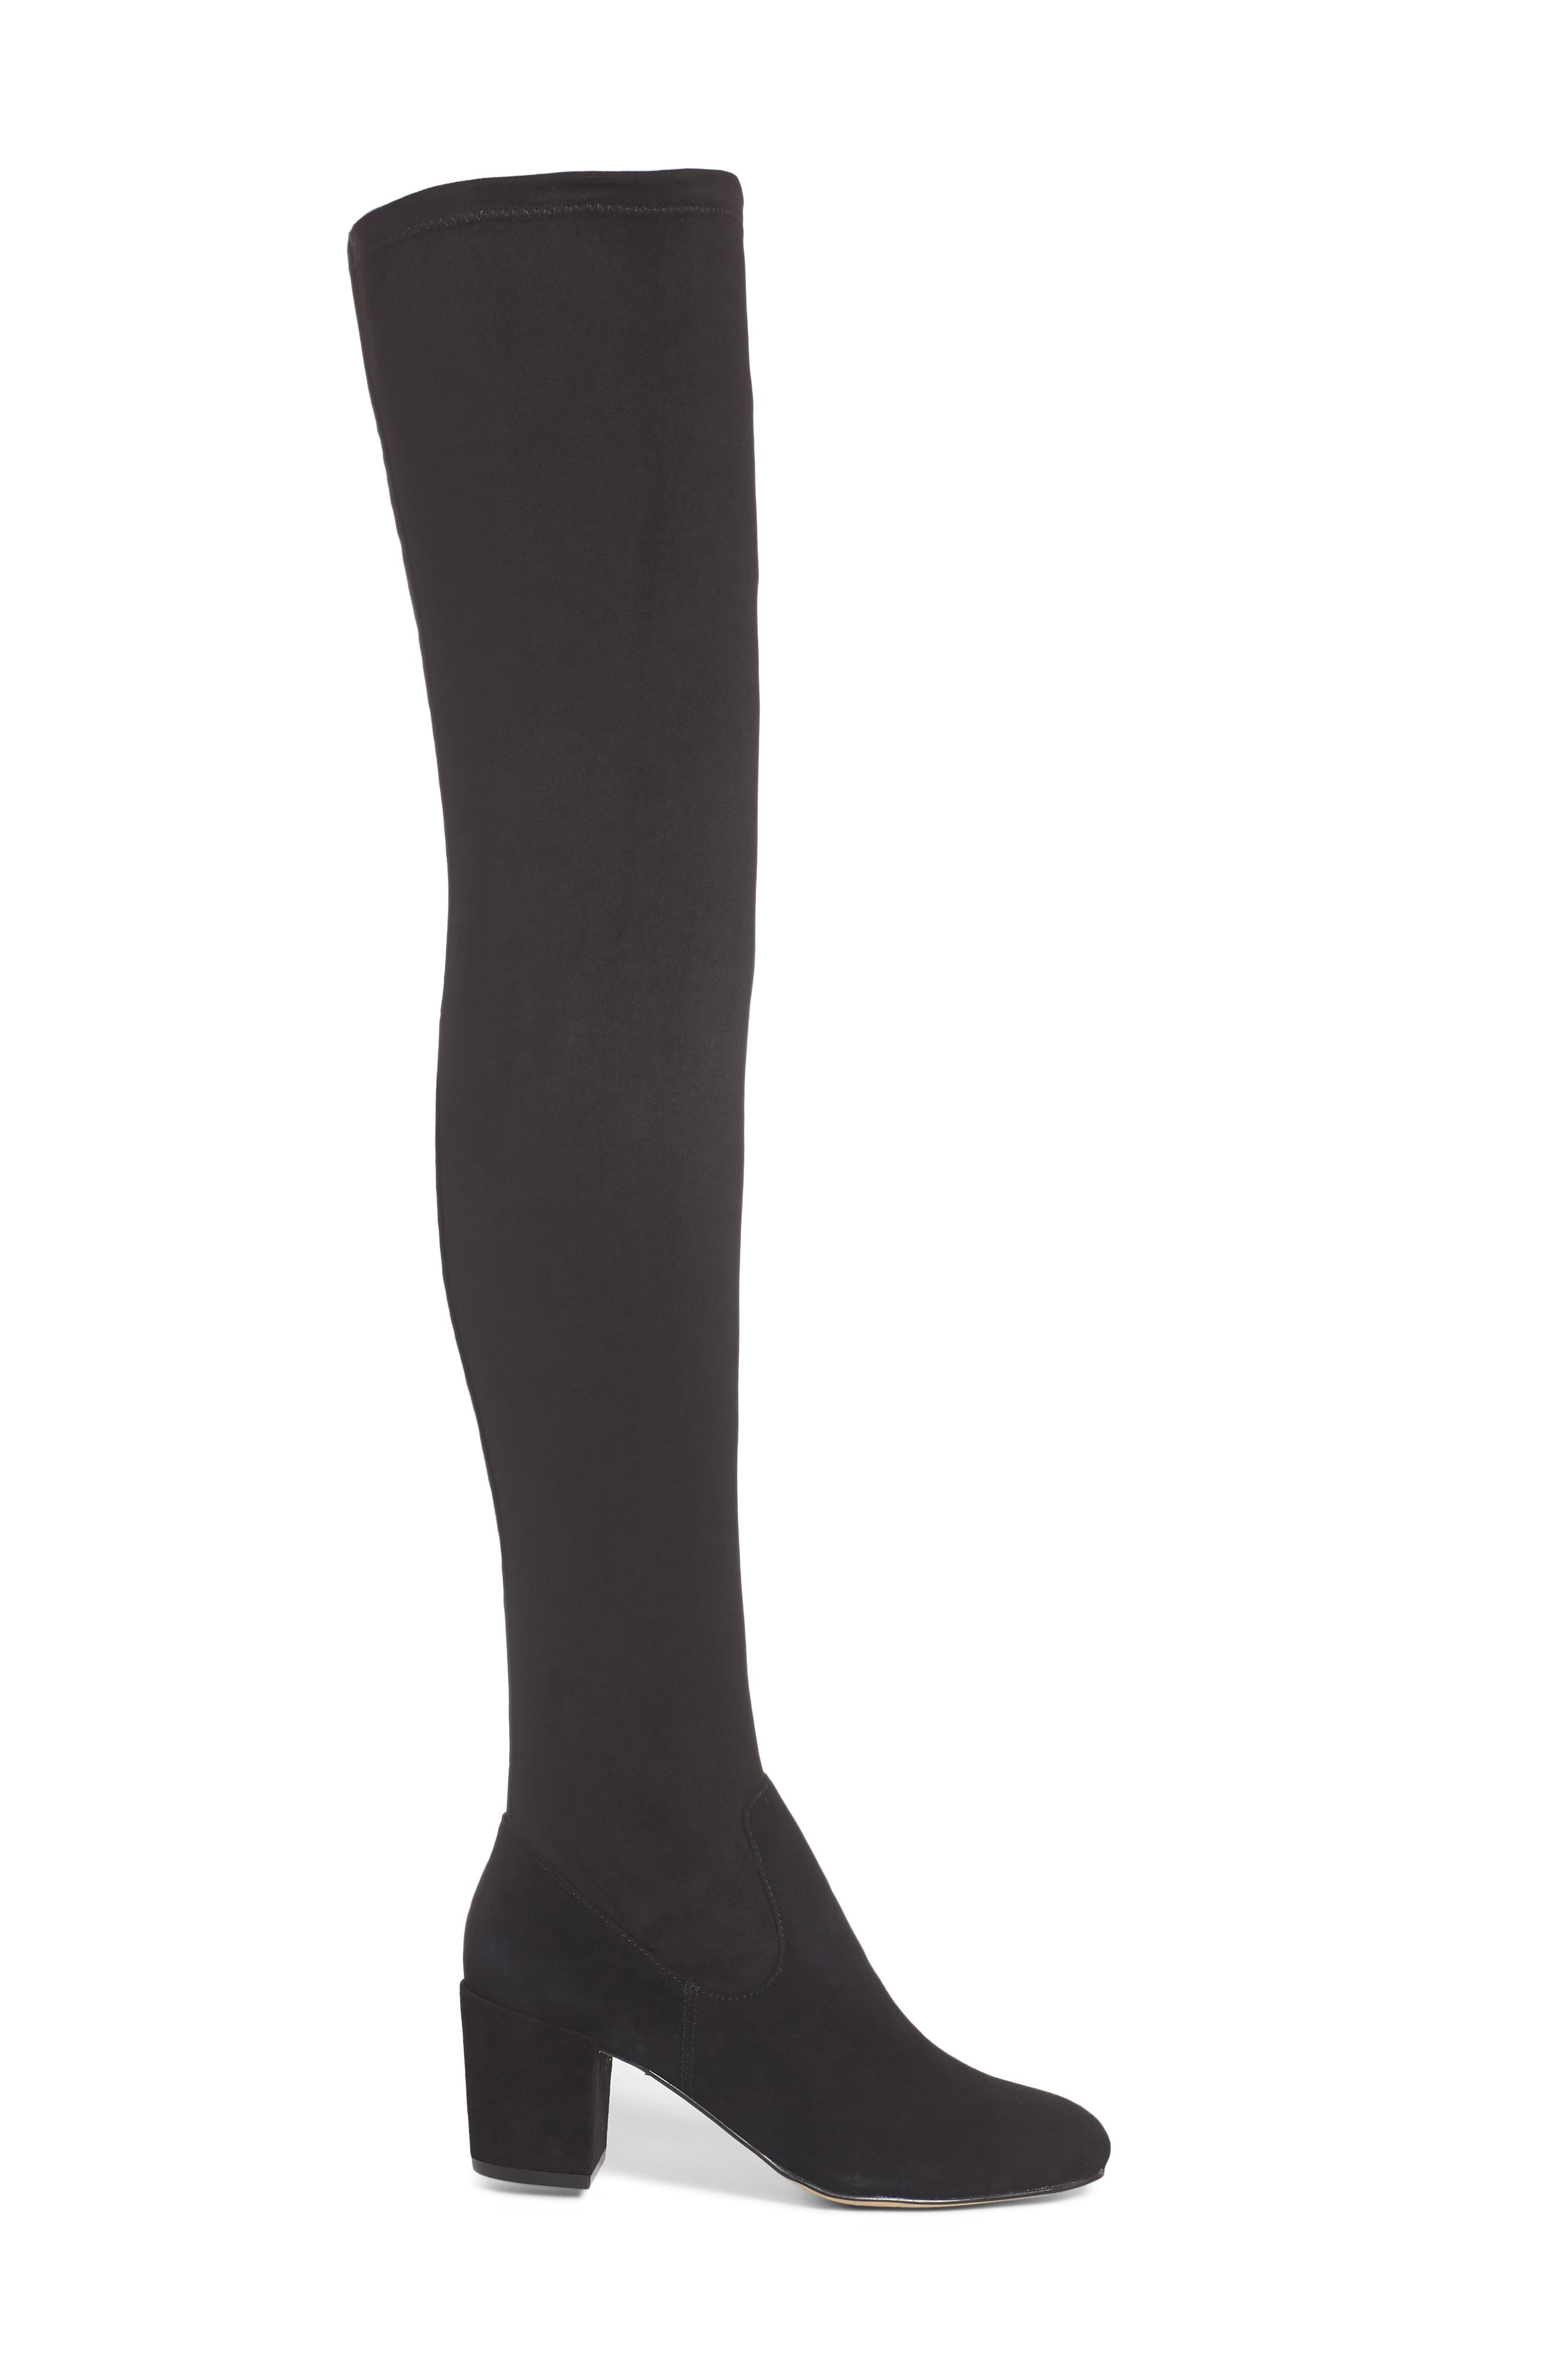 M4D3 Sobrina Over the Knee Boot,                             Alternate thumbnail 3, color,                             Black Suede/ Black Fabric